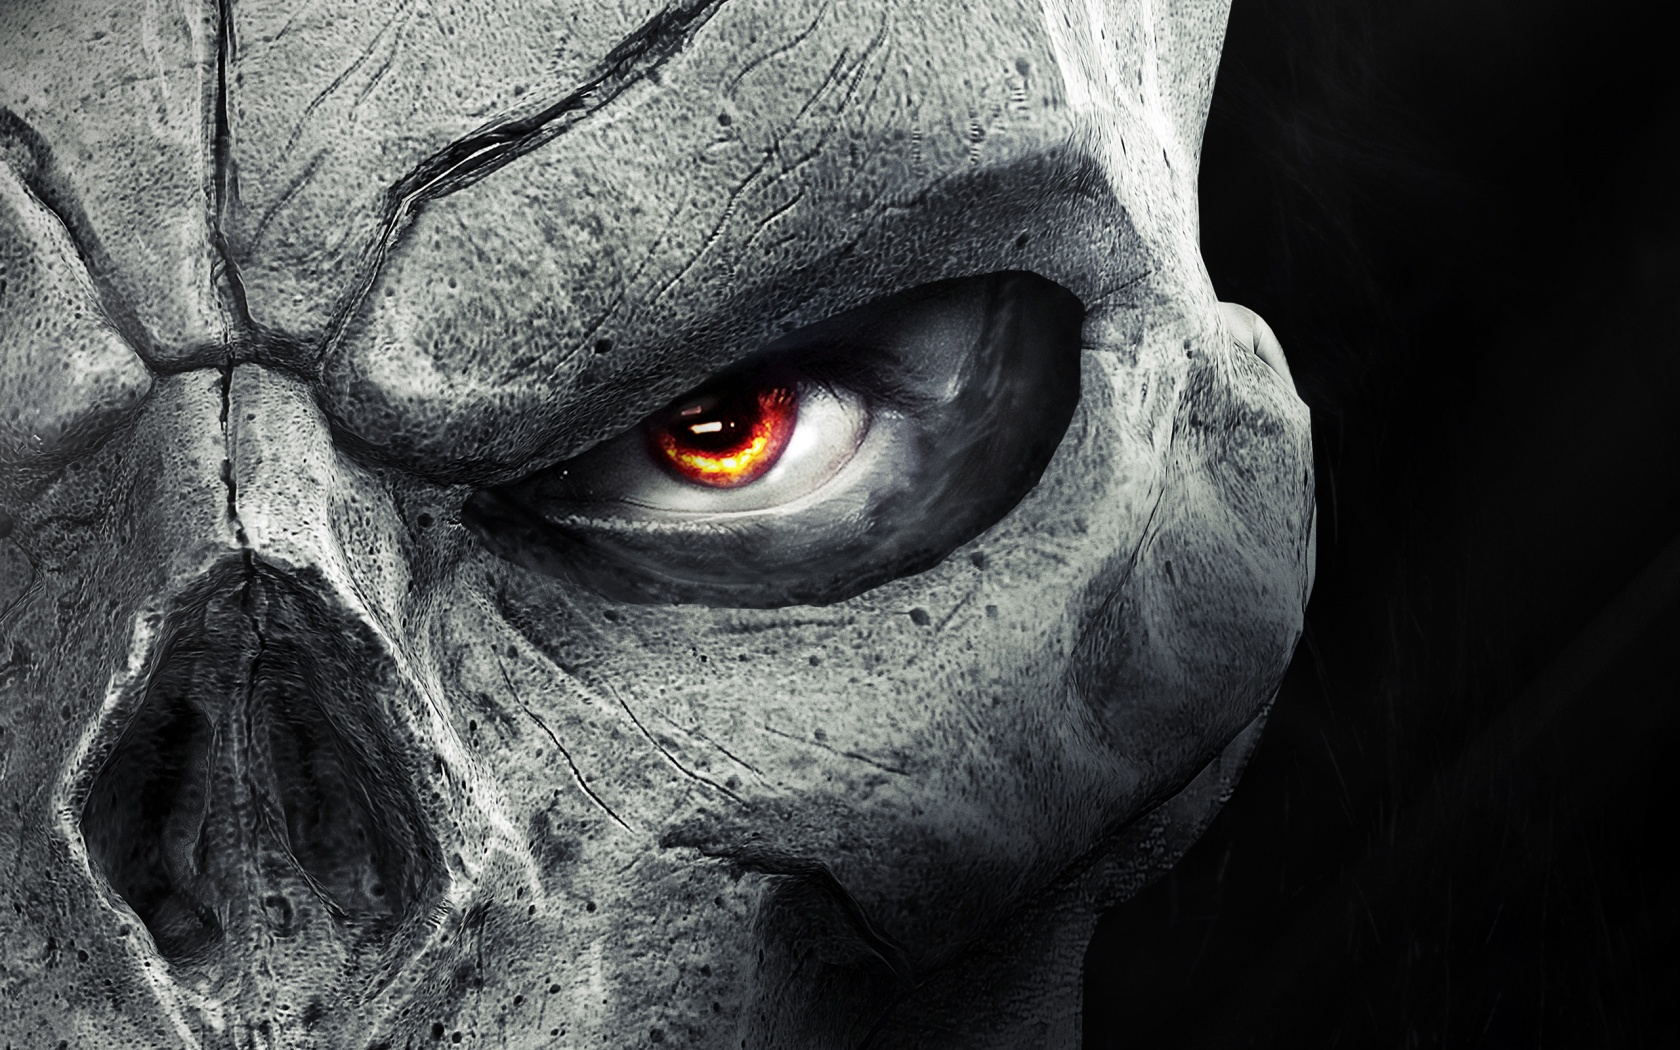 Super Scary Wallpapers 43 Best Hd Images Of Super